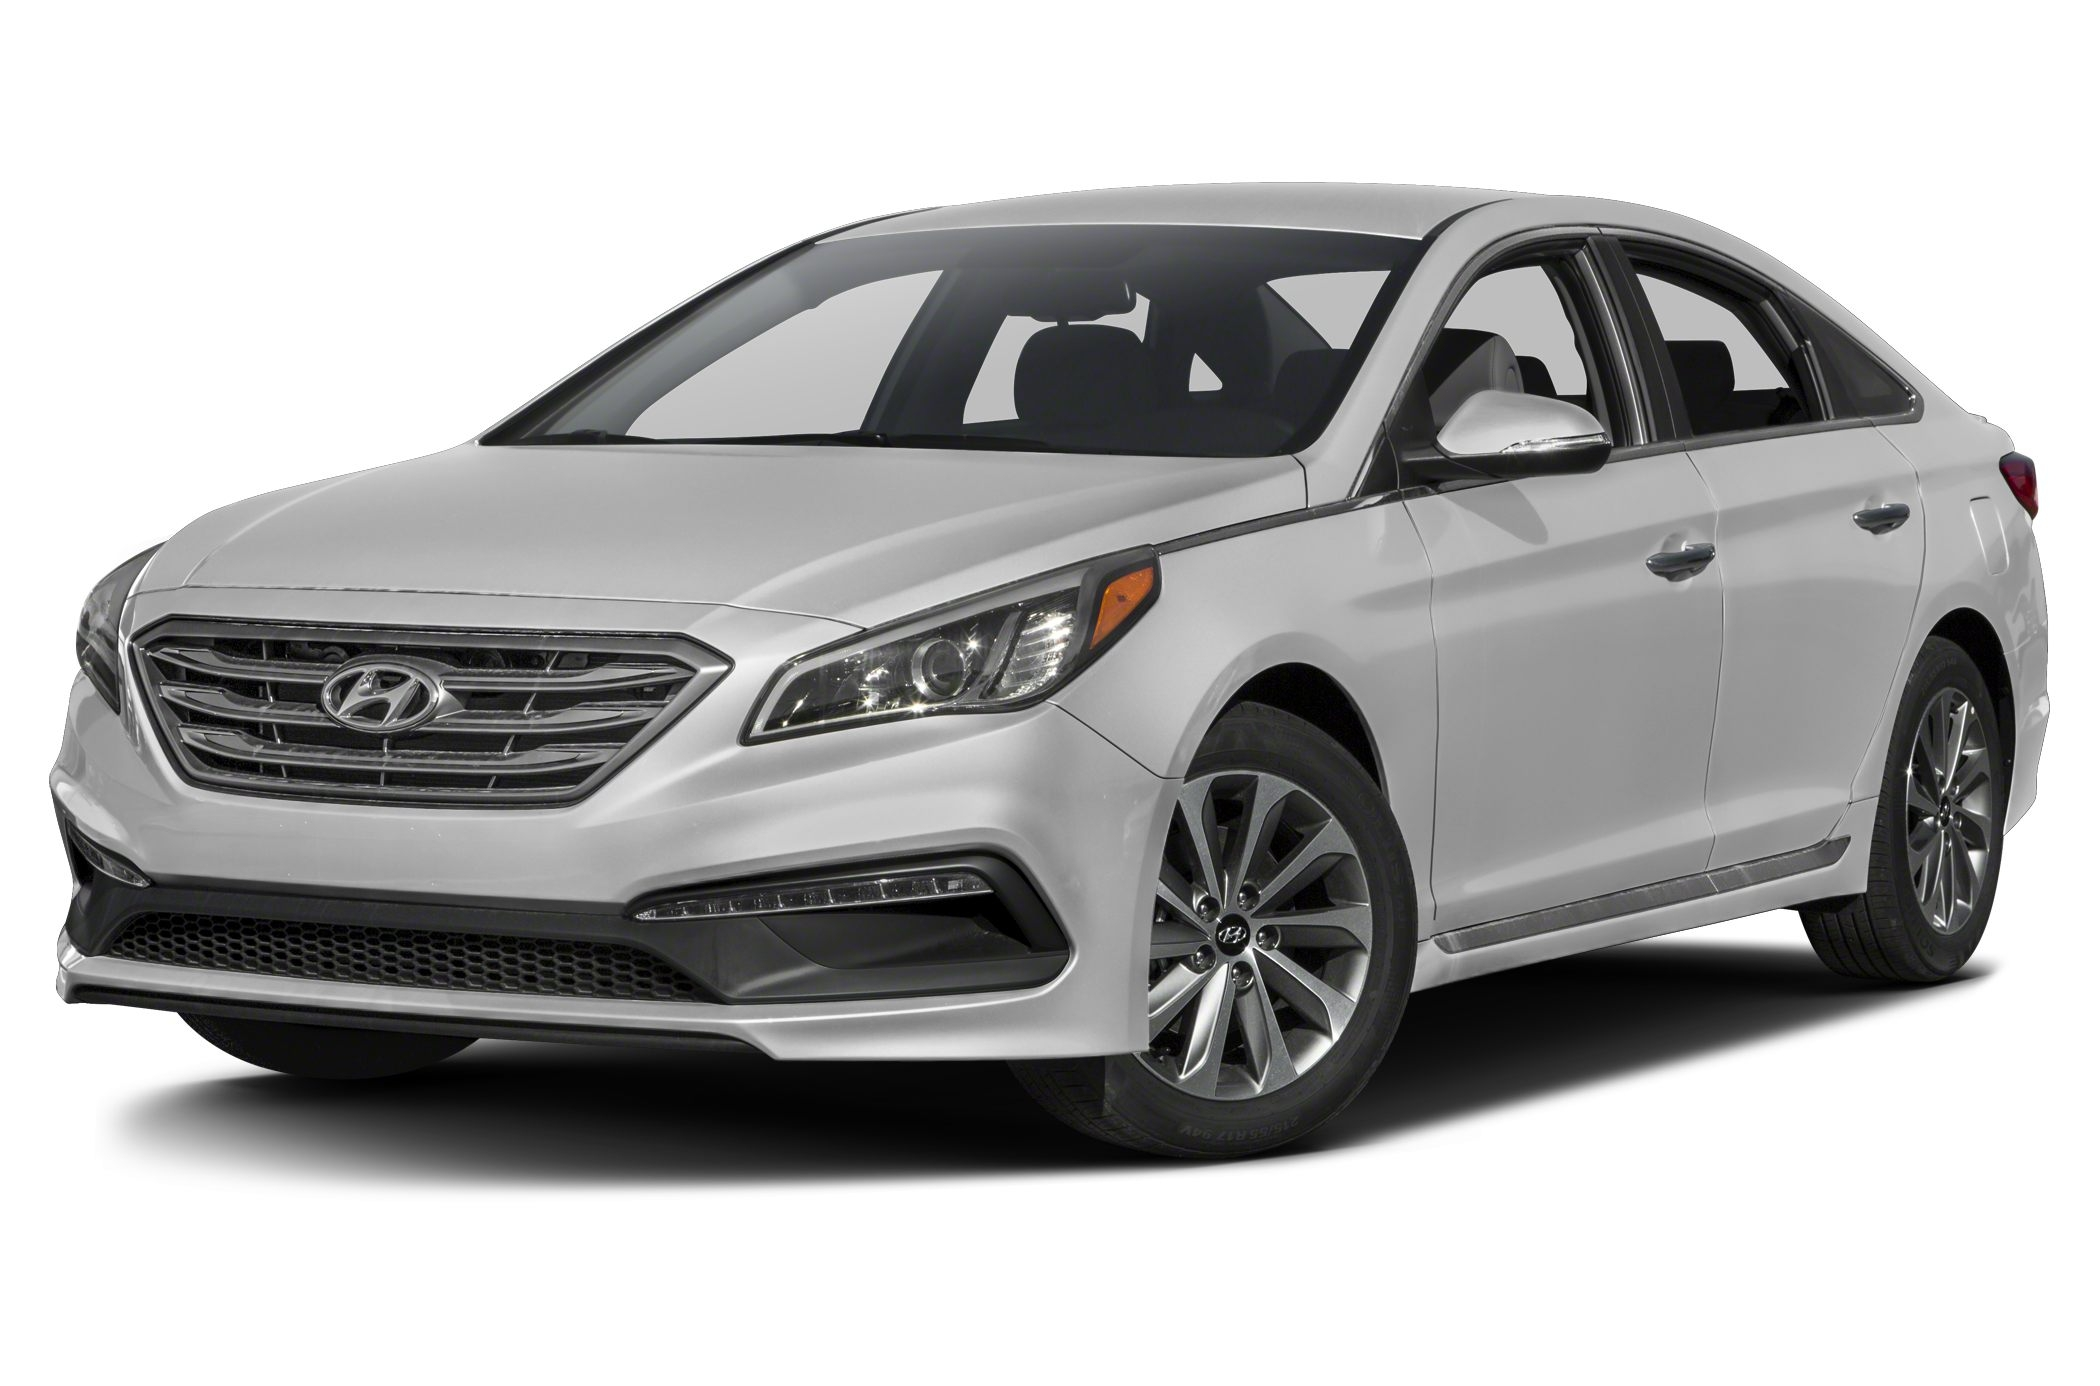 hyundai reno used cars for sale at lithia hyundai of reno in reno nv